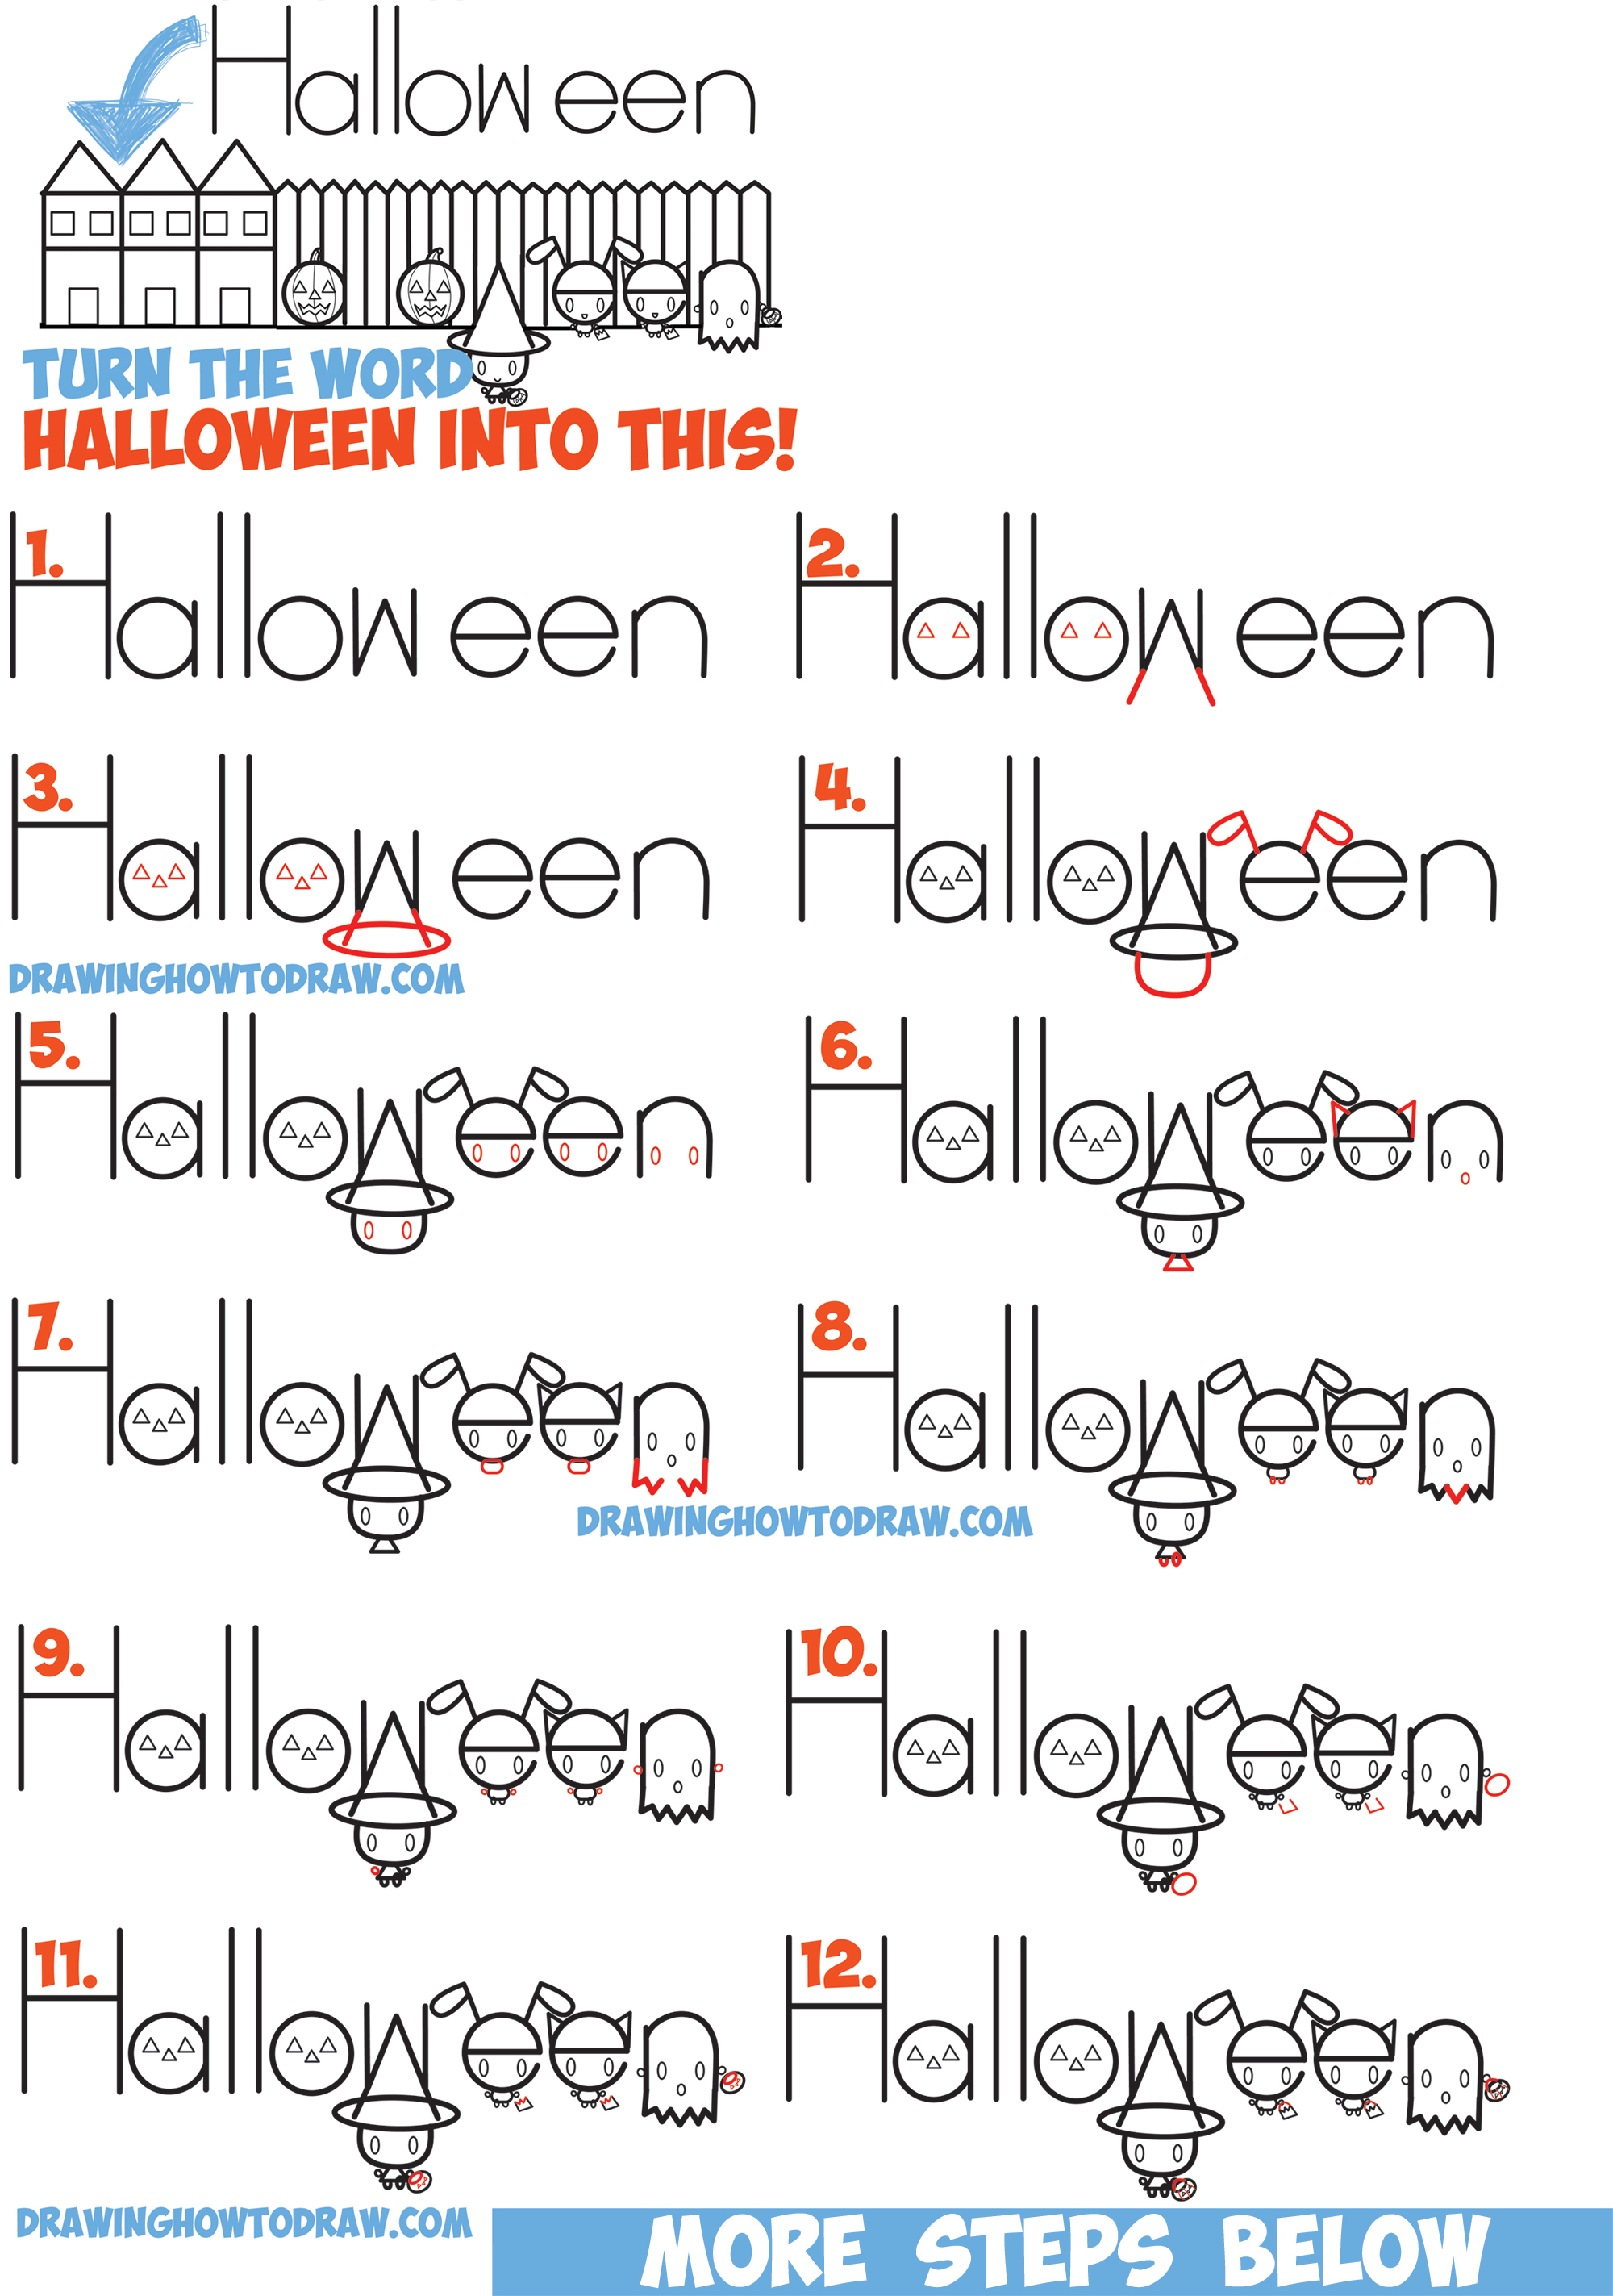 Easy Drawings For Kids Halloween Step By Step